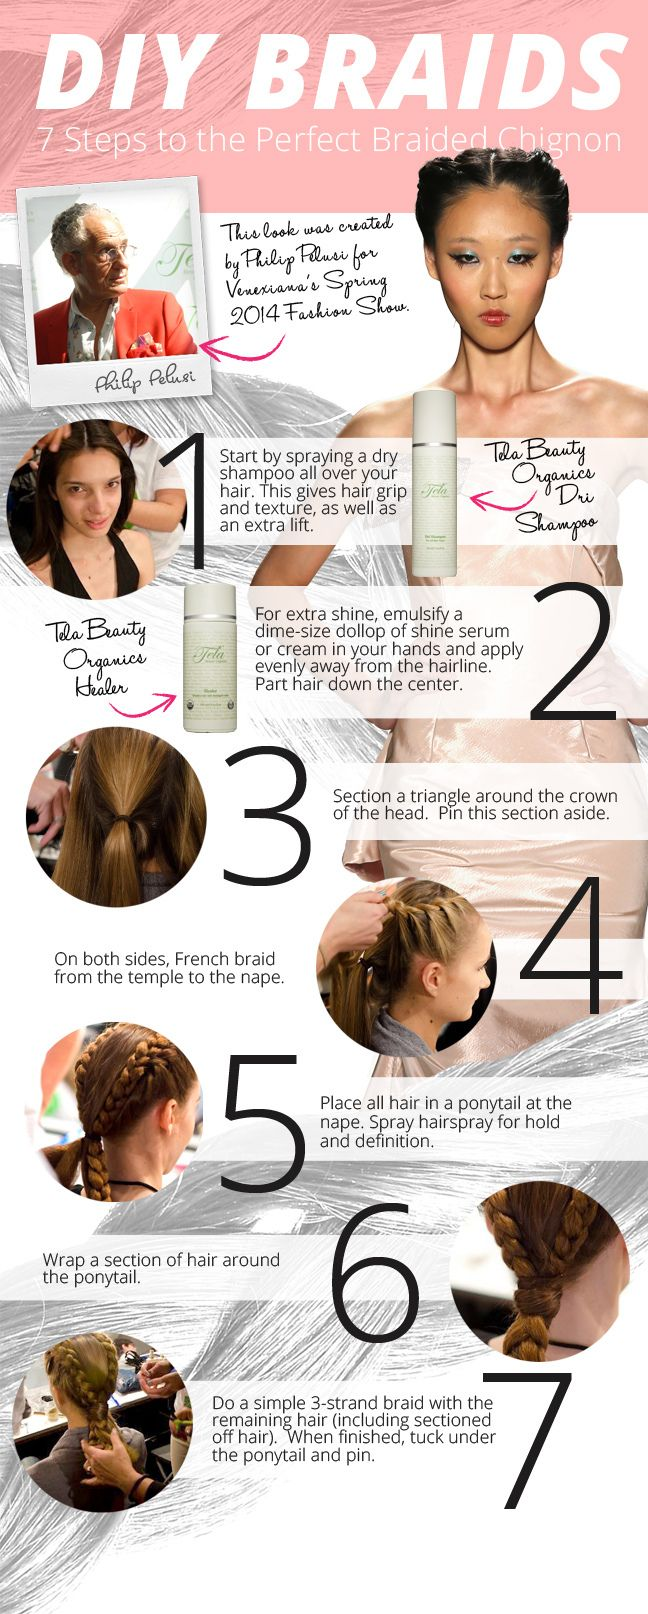 Braid How To: 7 Steps to the Perfect Braided Chignon (Infographic)